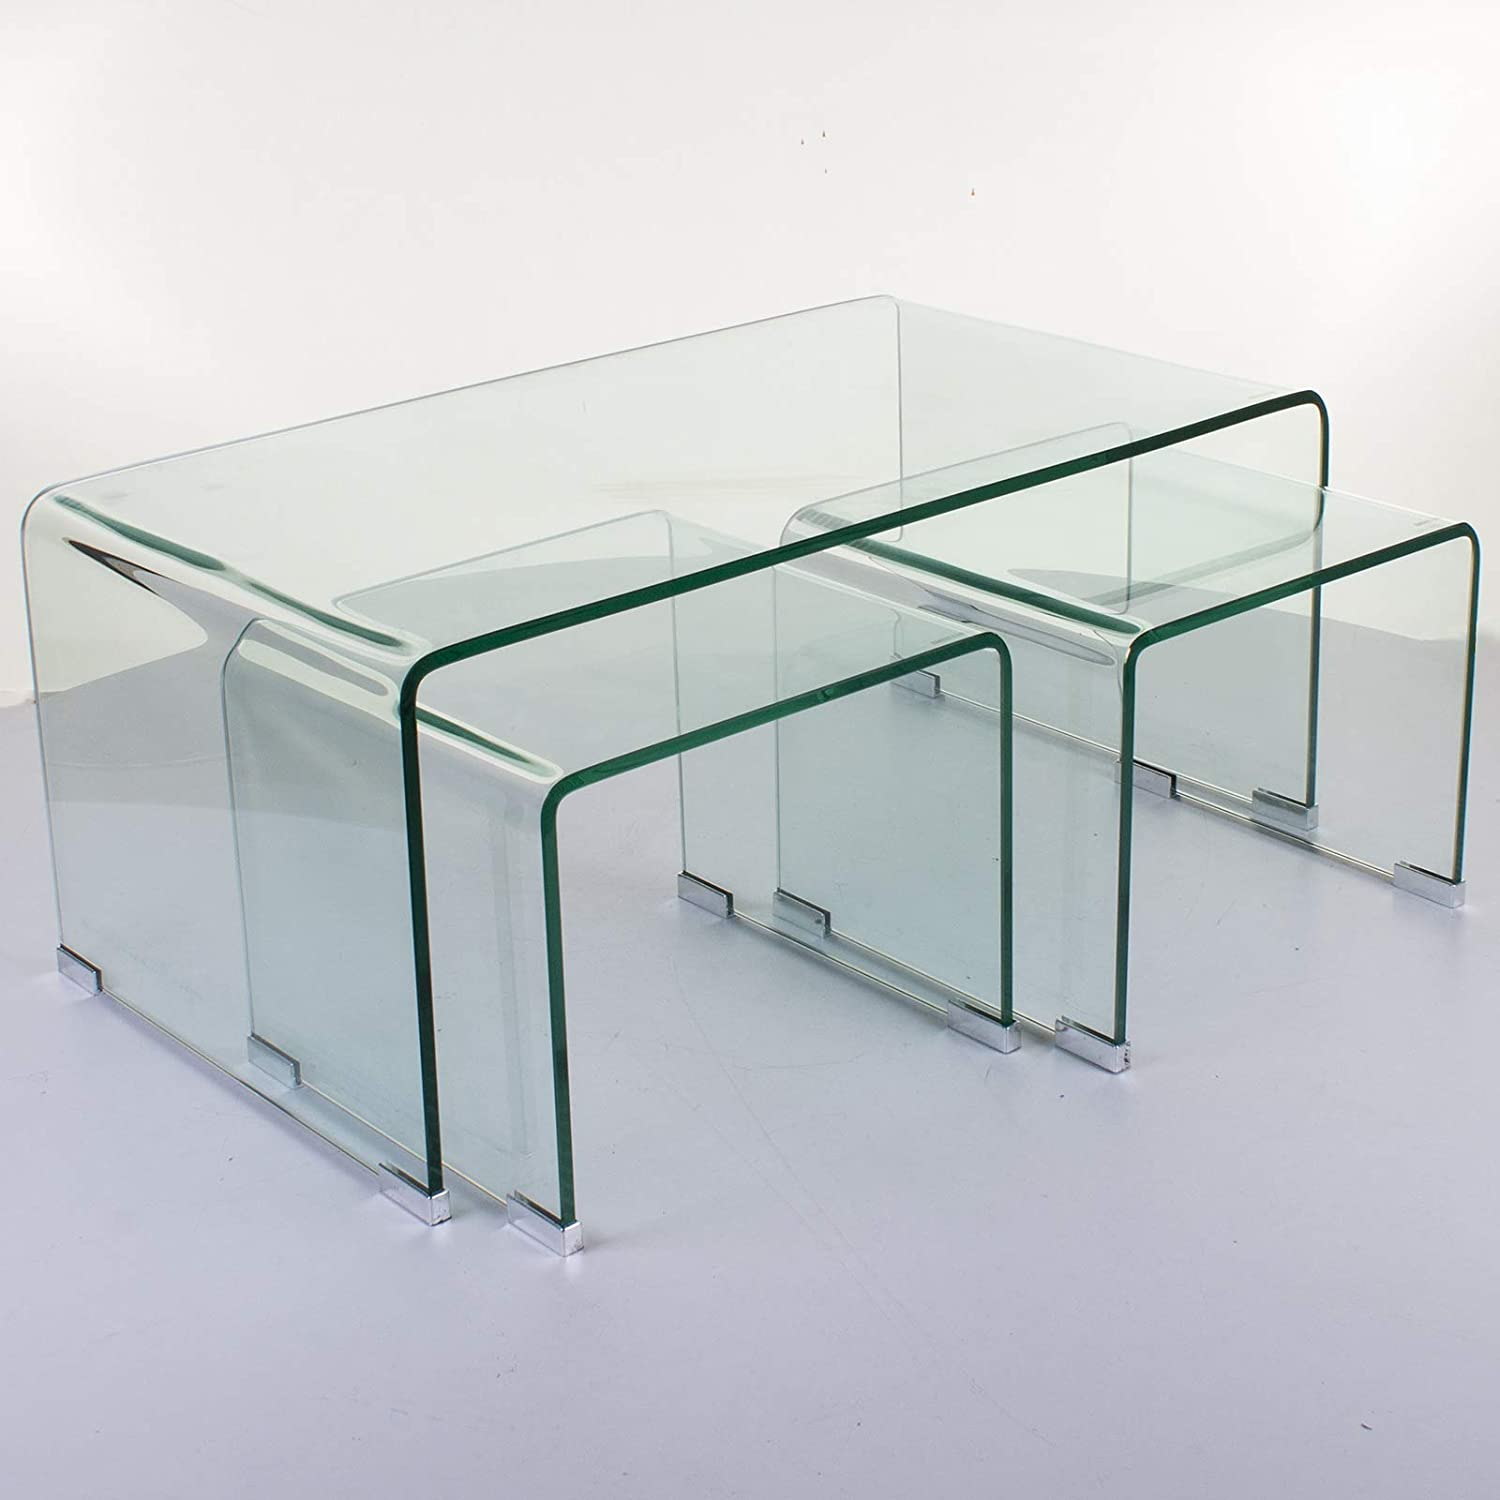 Marko Furniture Odense Set Of 3 Bent Glass Nested Coffee Side Table Set Curved Transparent Tempered Amazon Co Uk Kitchen Home